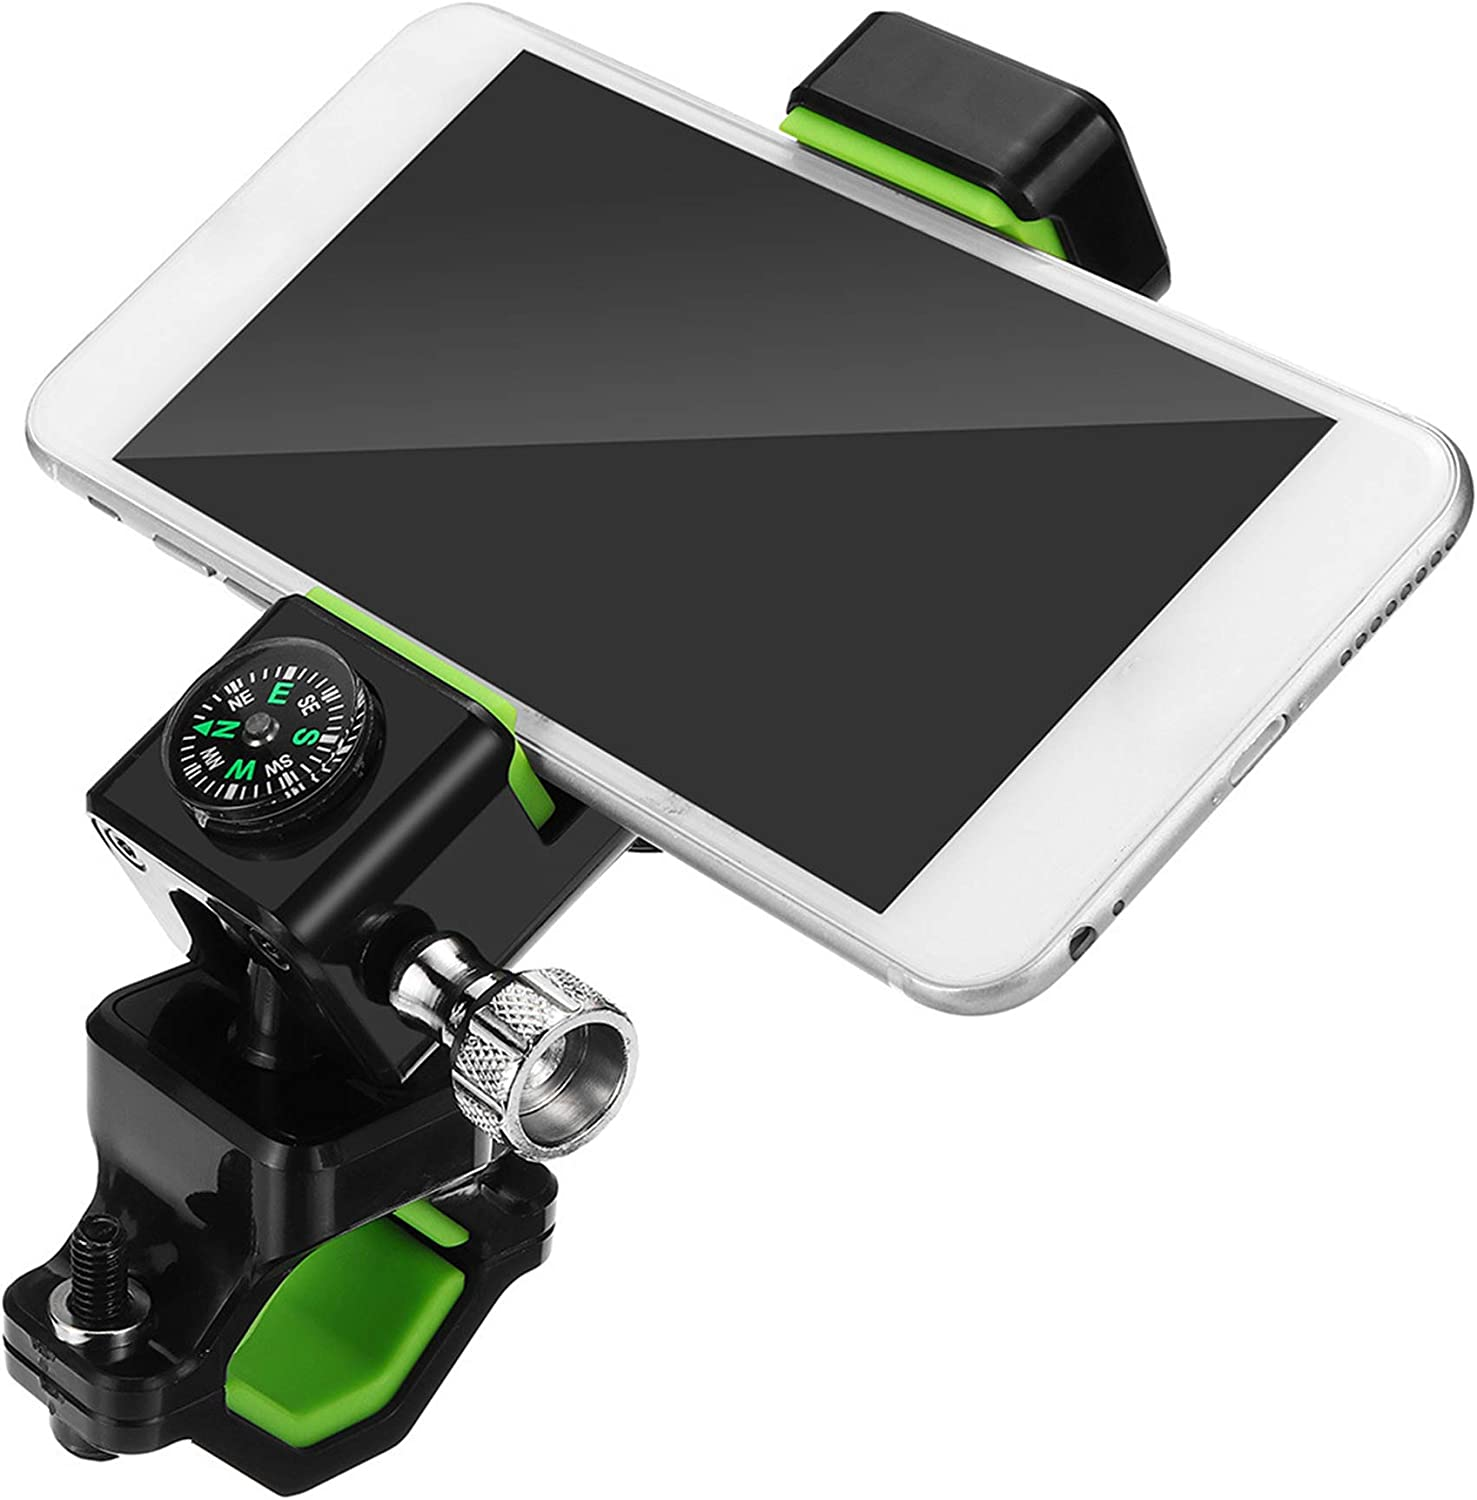 NOMSOCR Bike Phone Mount Bicycle Holder with Compass 360 Degree Rotatable Cell Phone Mount Android Smartphones 4.7-6 Bicycle Handlebar Holder for iPhone X 8//7//7Plus//6s//6Plus//5S